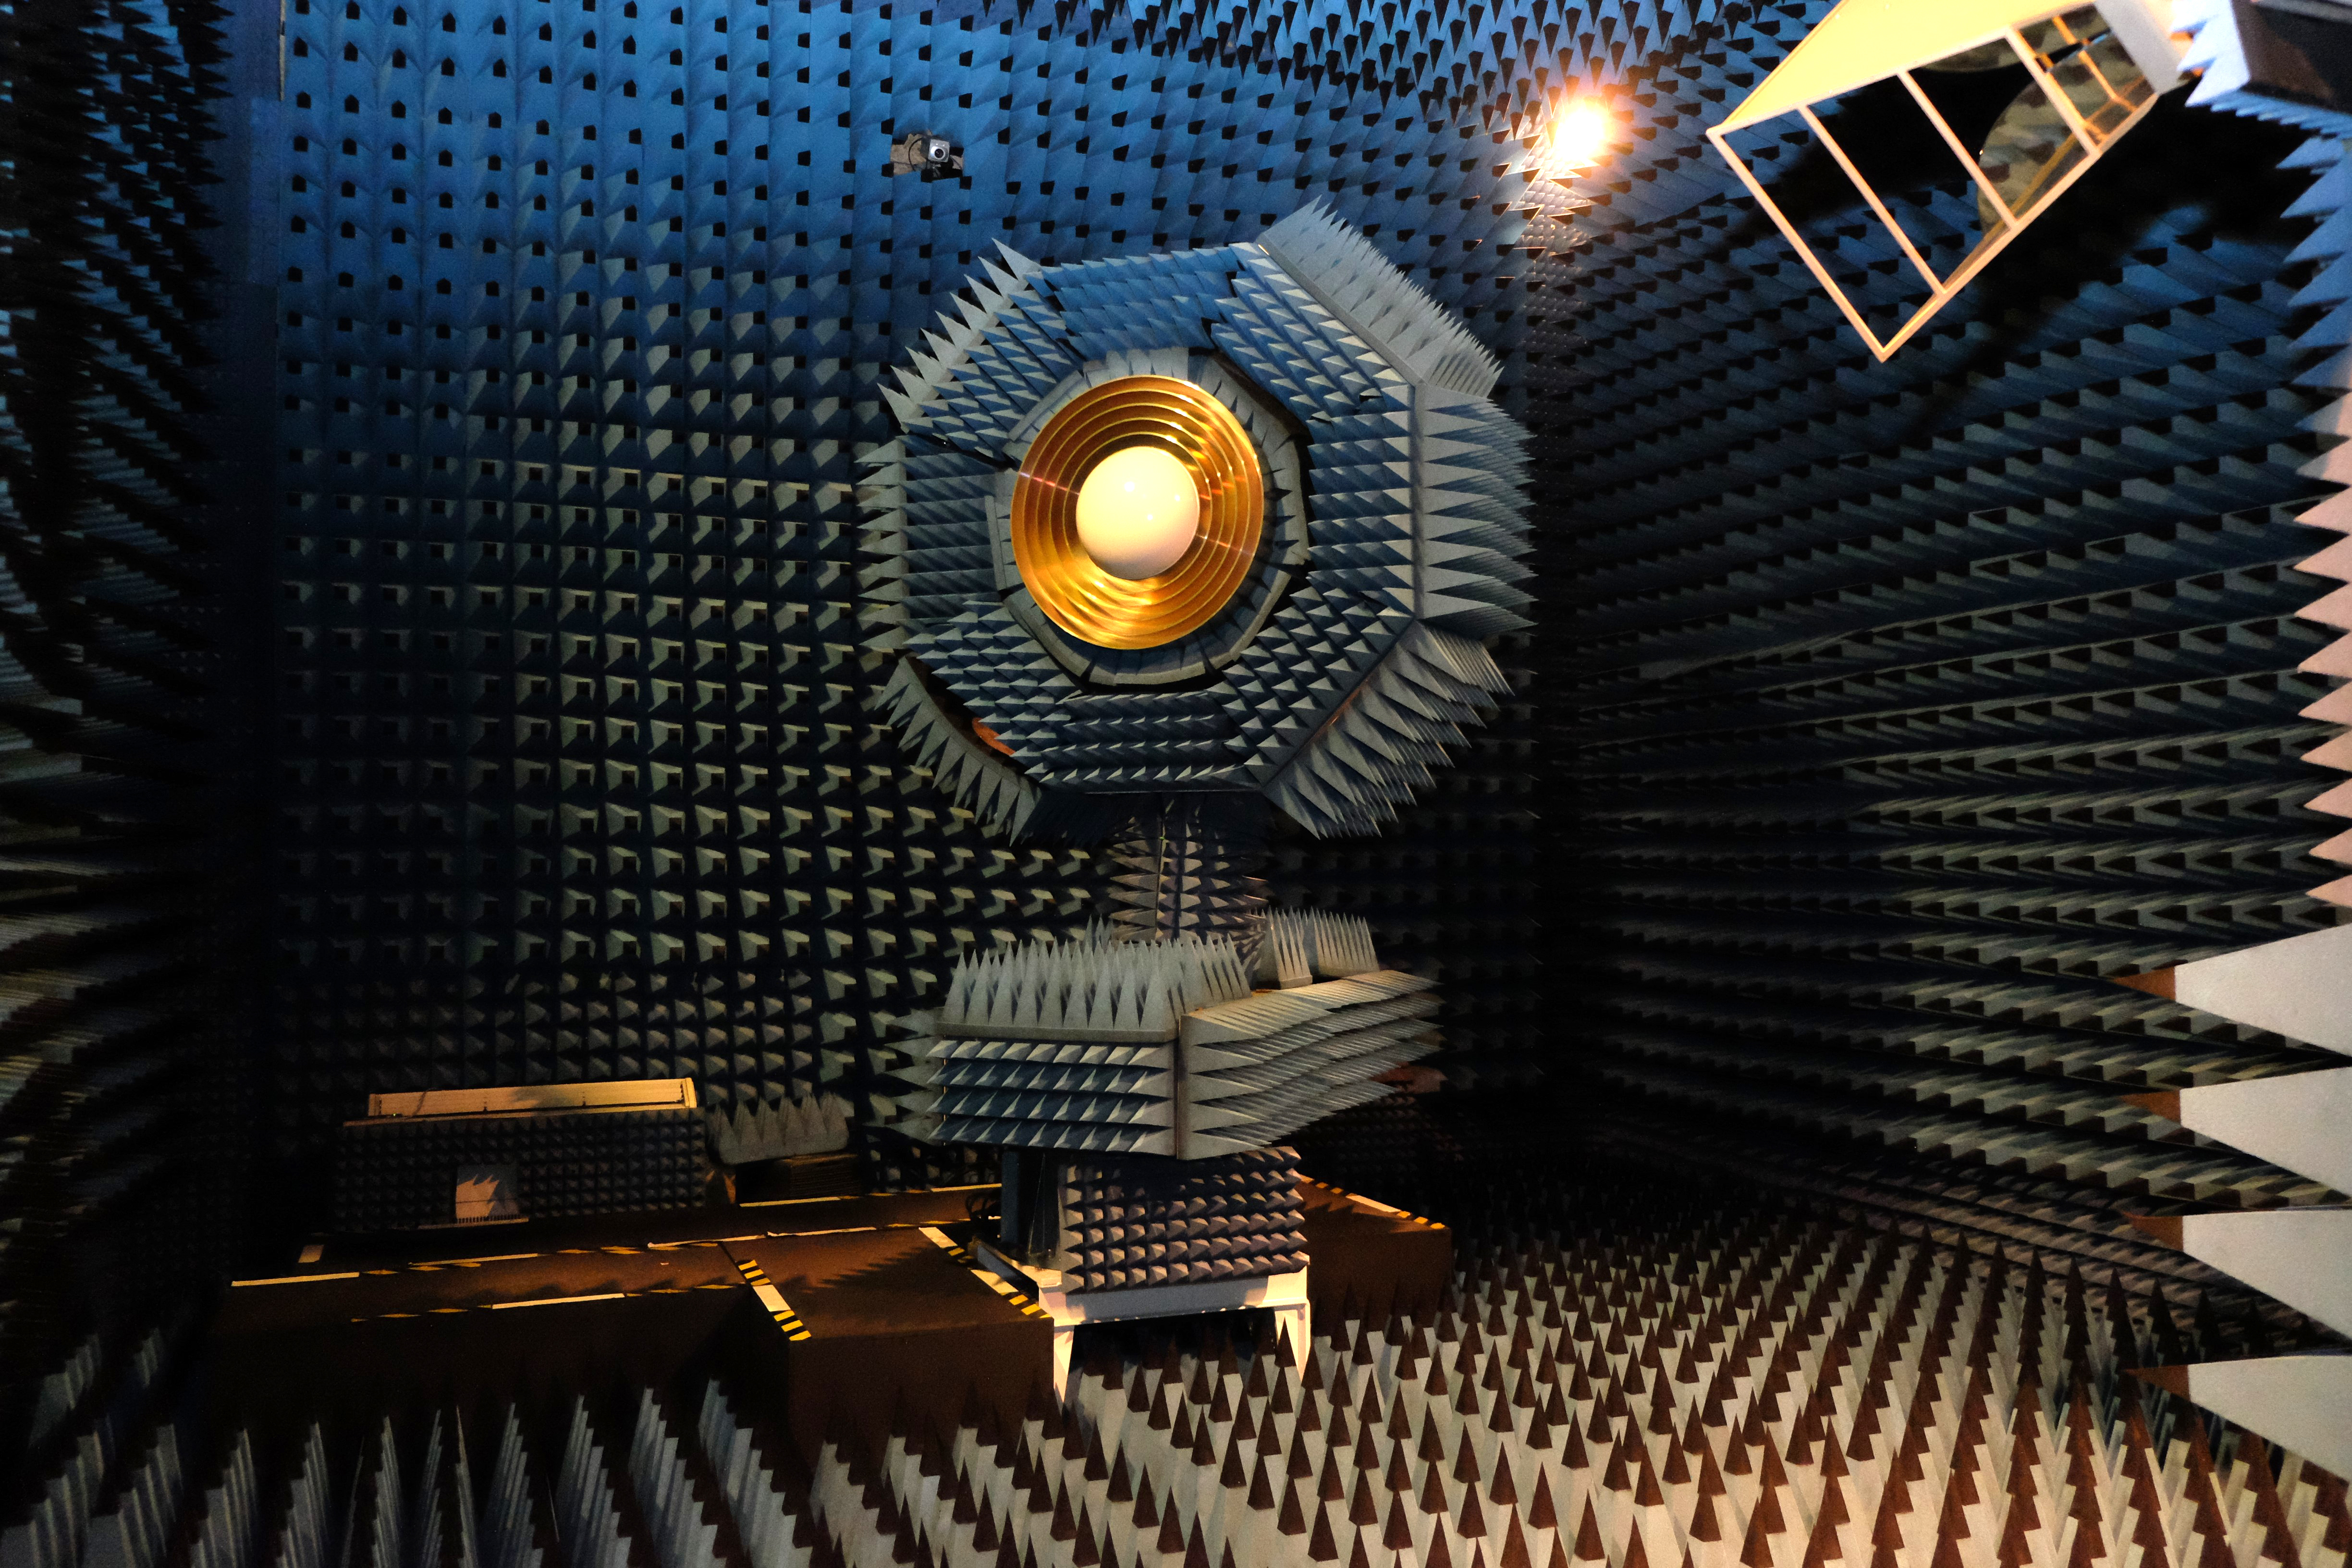 A sound proof room that is covered in small pyramids and spikes made from foam. At the focus is the UWL receiver, a semi circle surrounded by gold concentric rings.